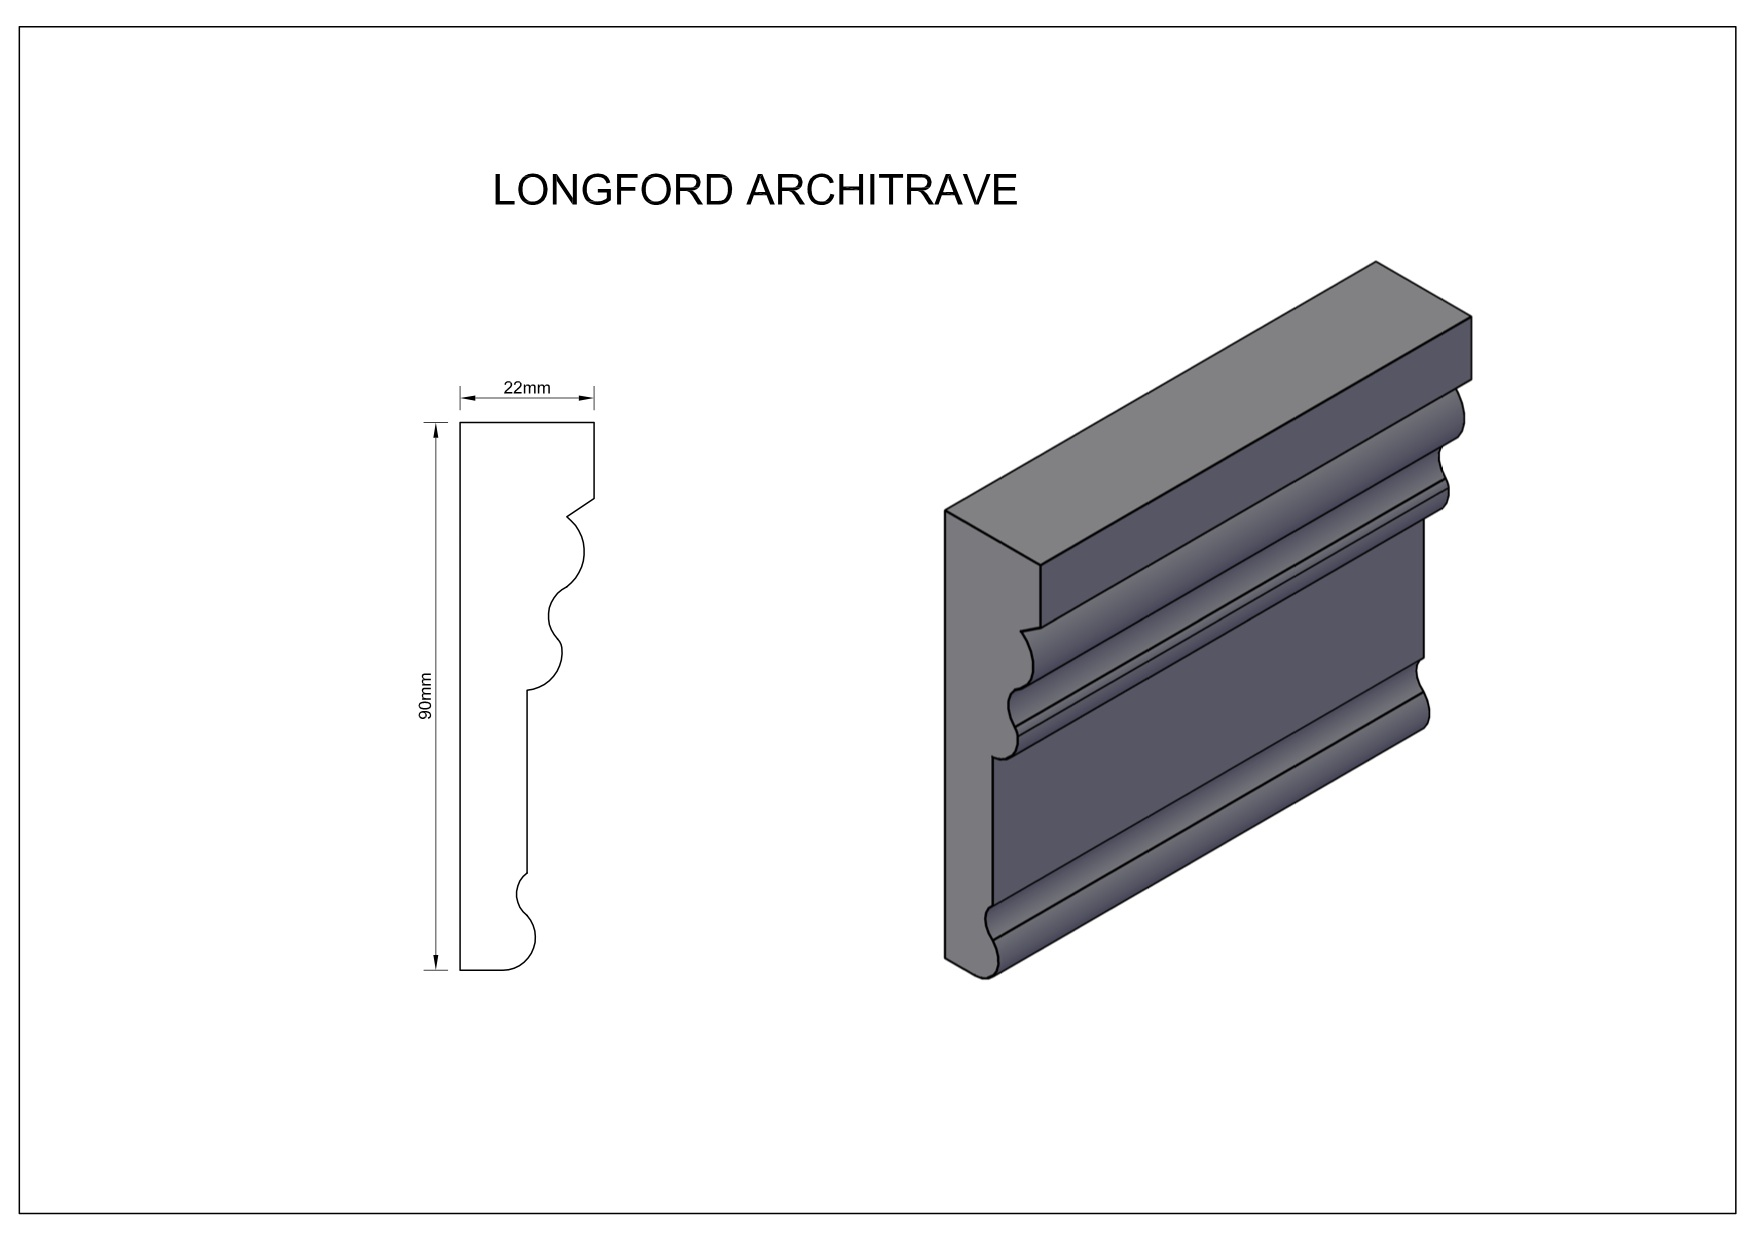 Longford-Architrave large